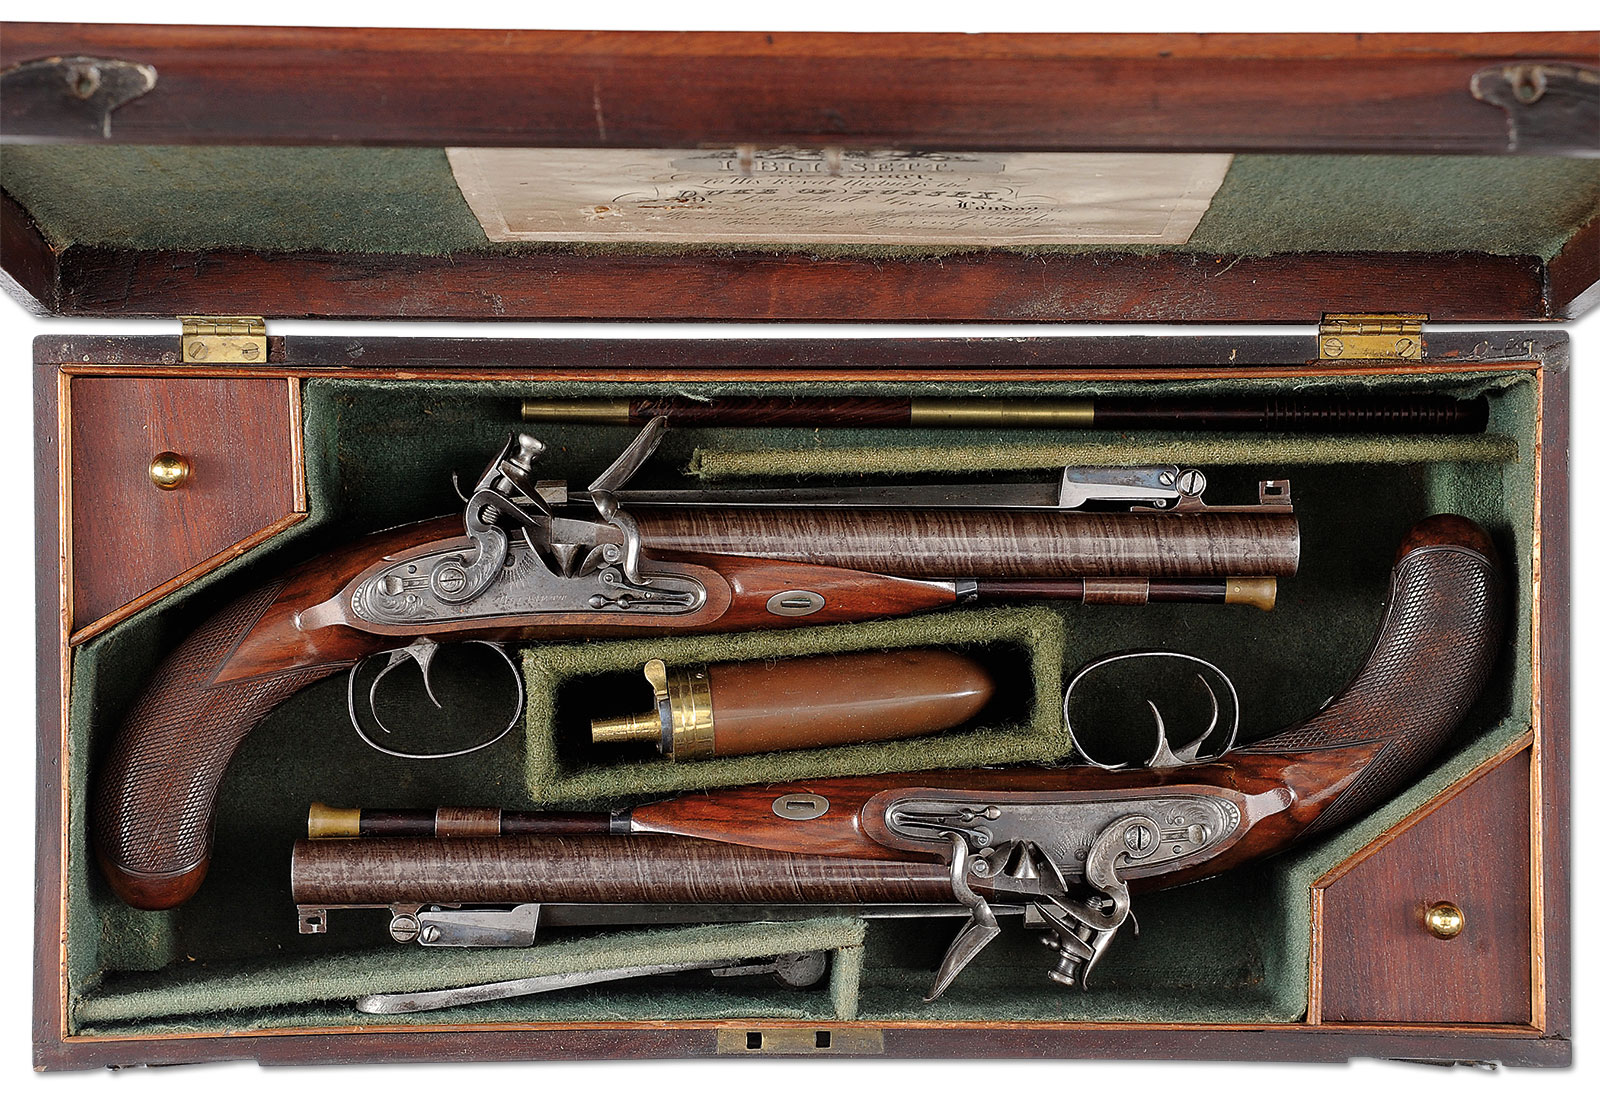 purdey shotgun price